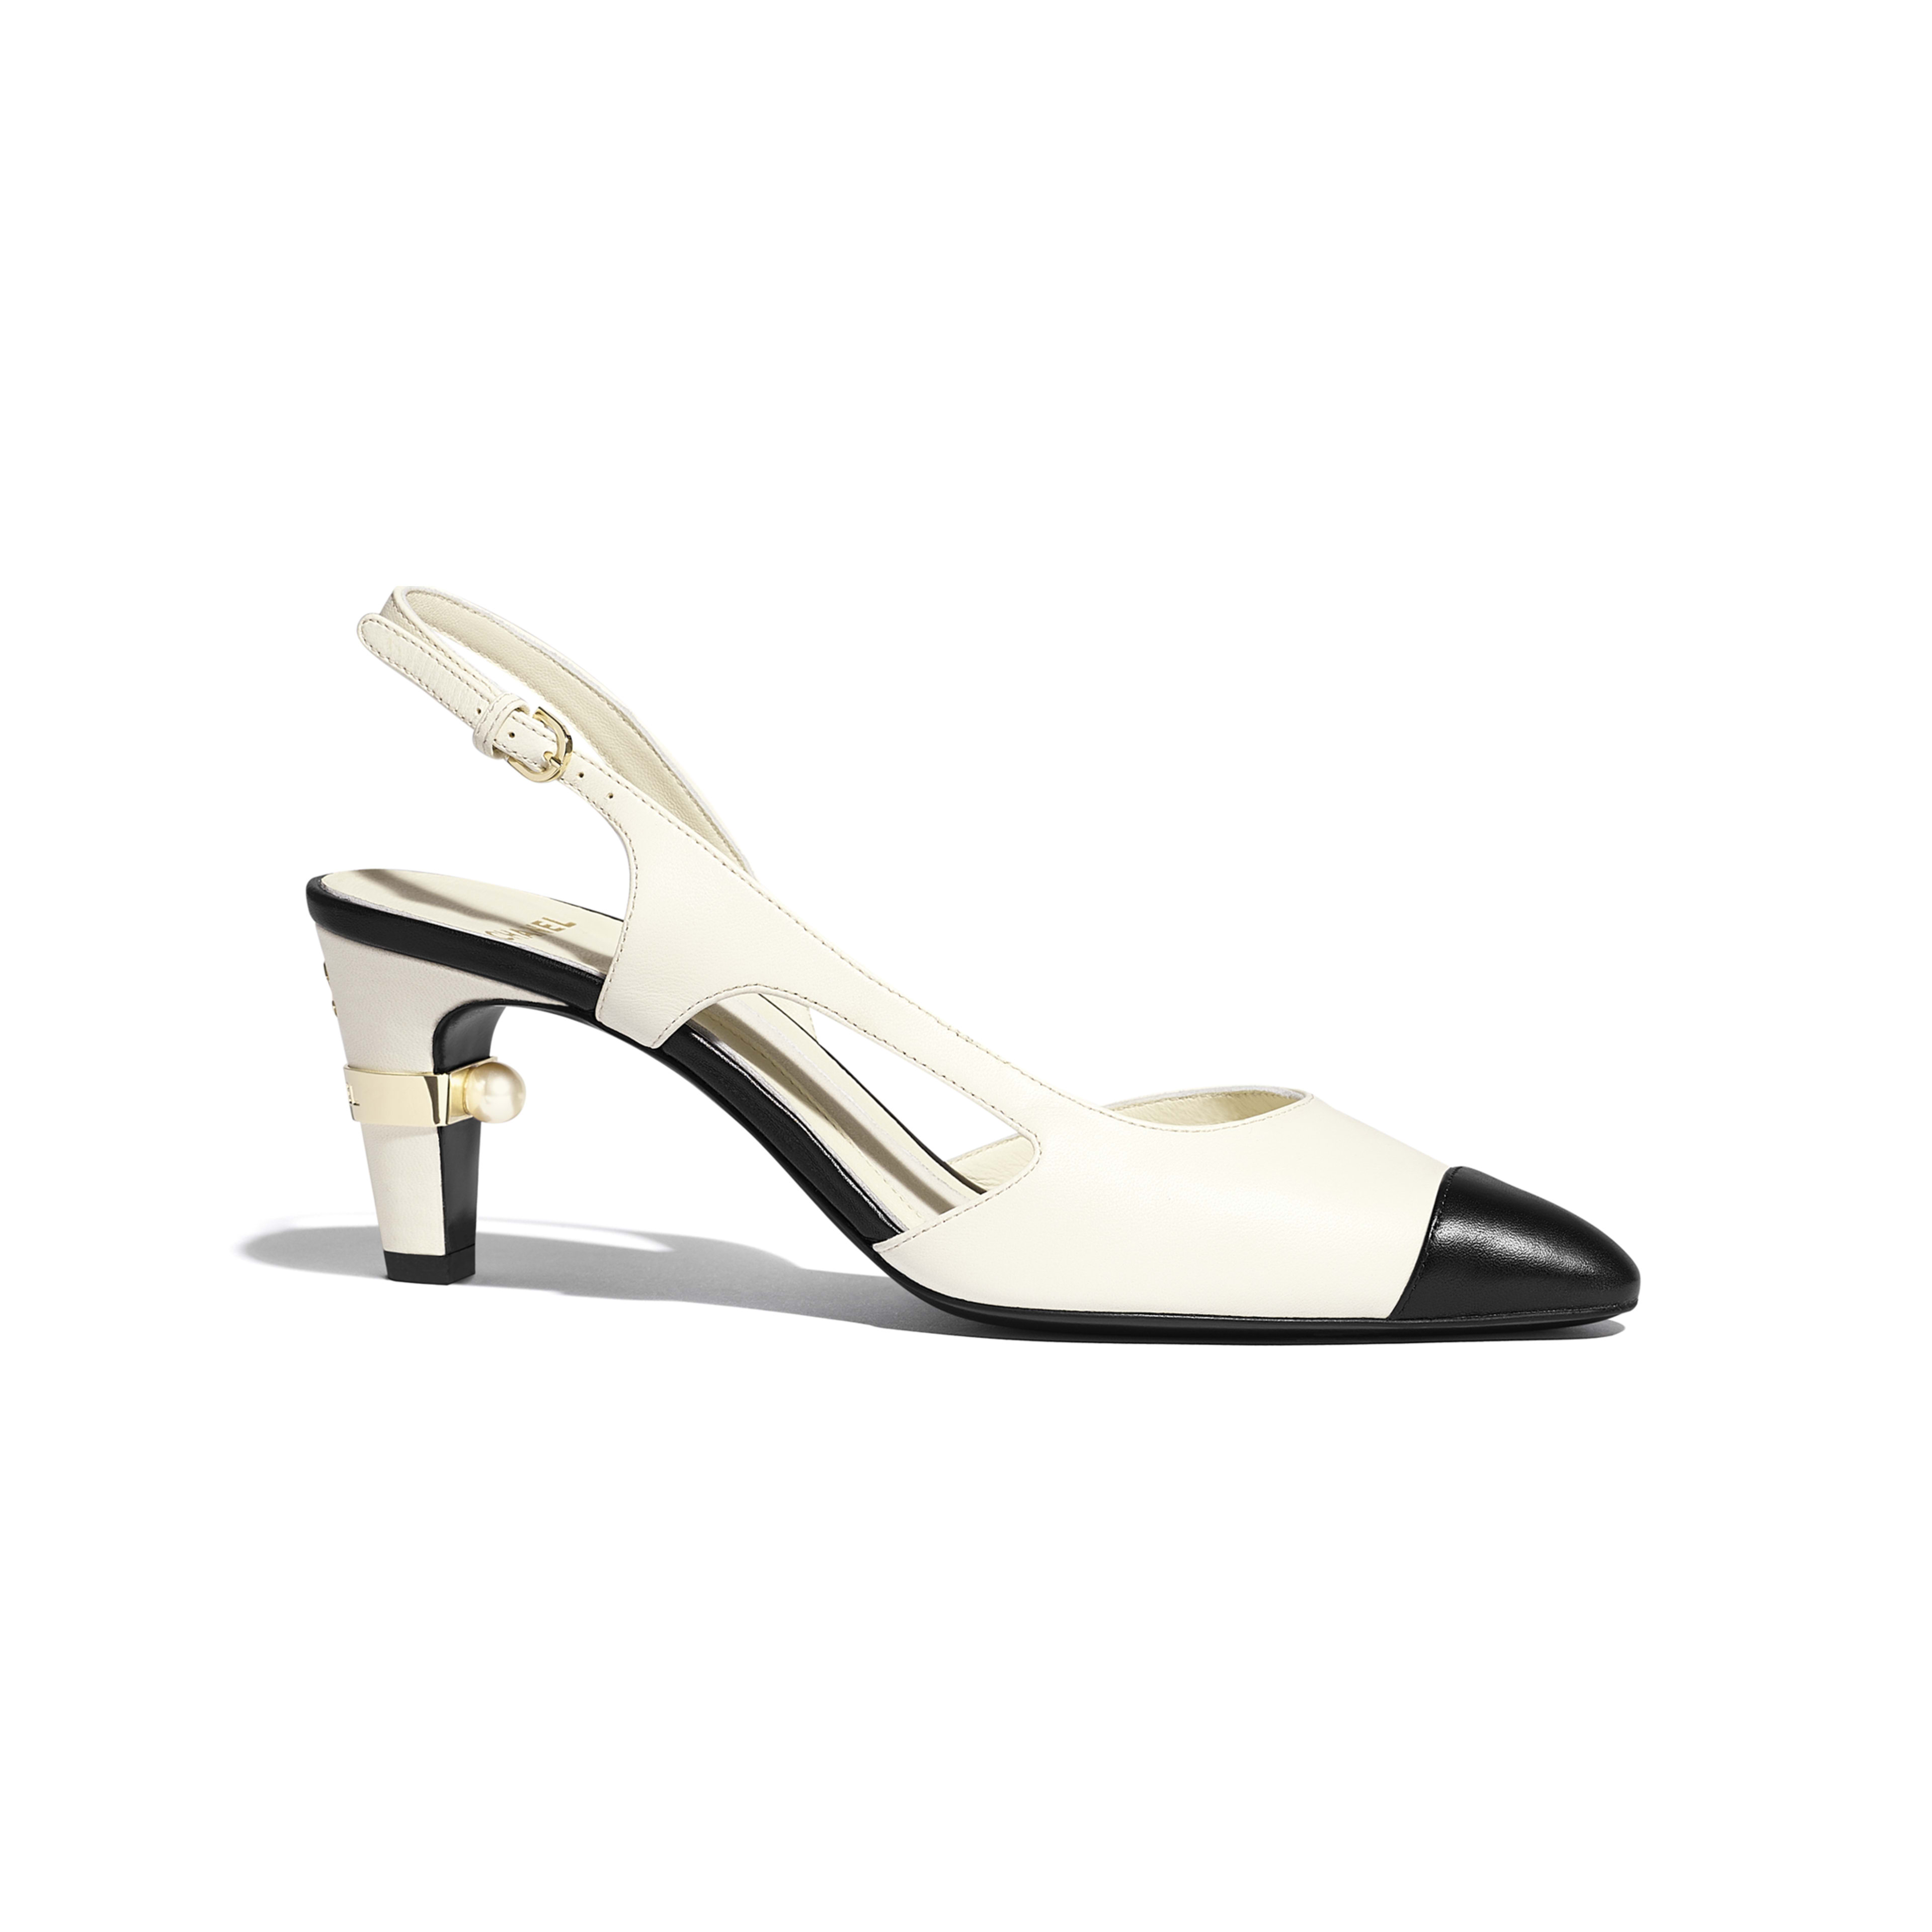 Sling-Back - Ivory & Black - Lambskin - Default view - see full sized version